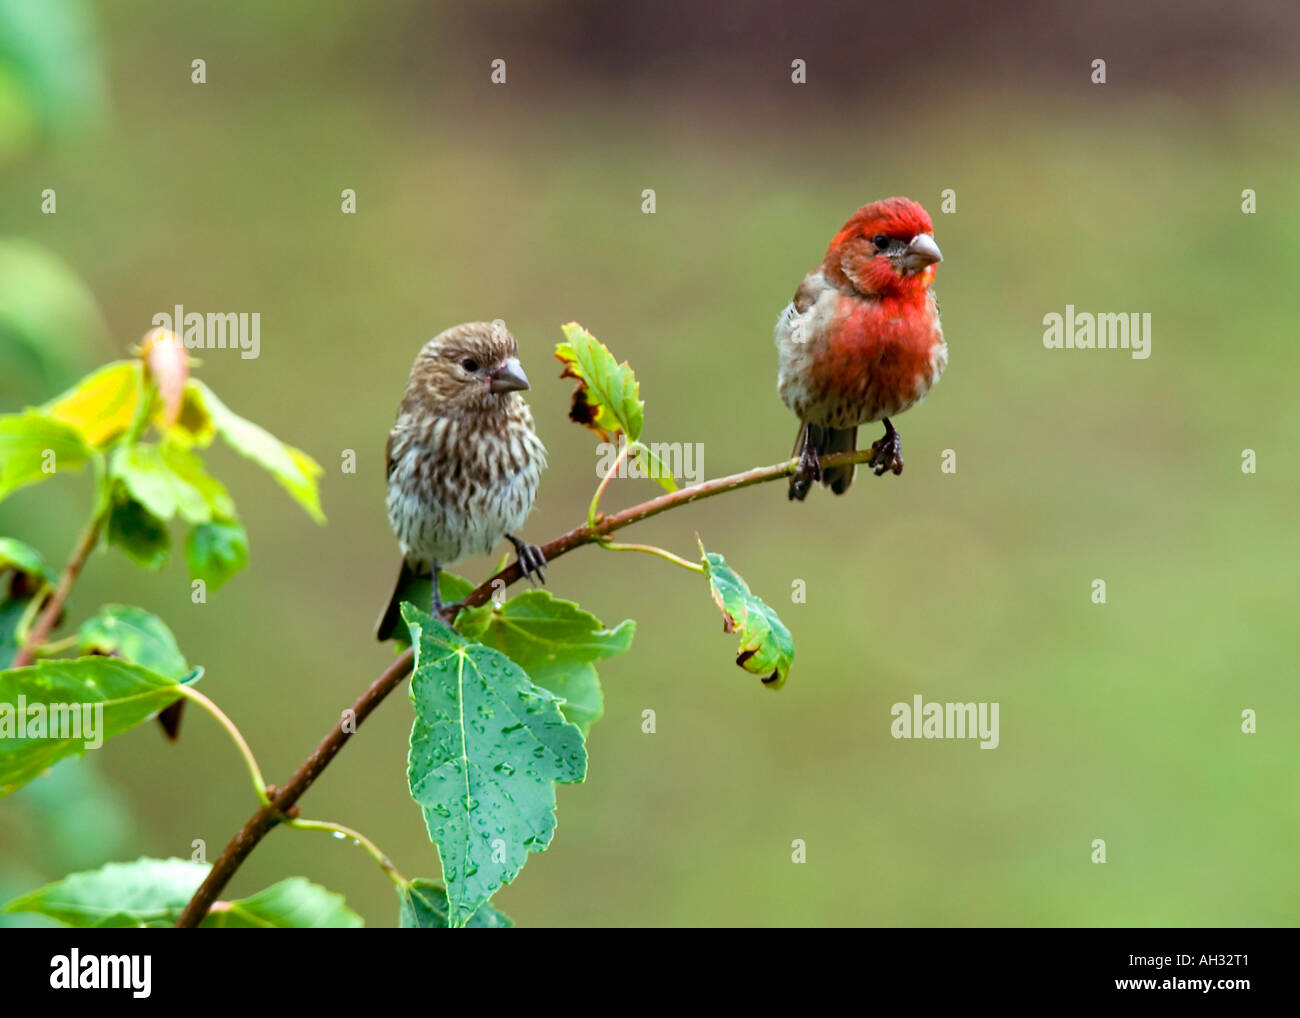 Male & Female House Finch - Stock Image